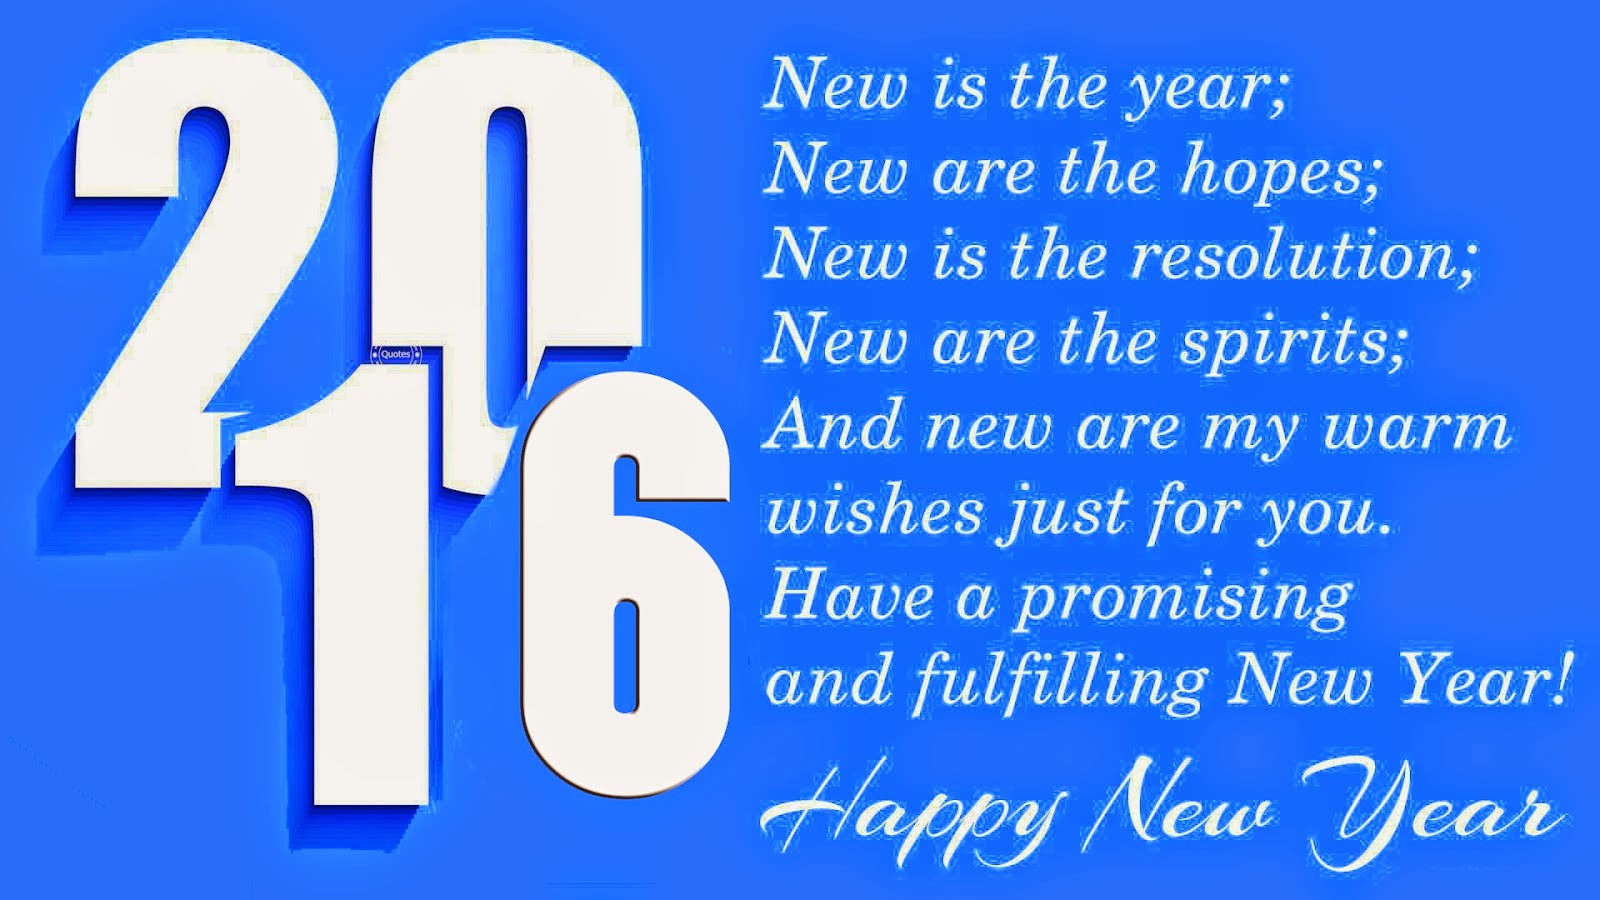 new year 2016 knocking the door new year wishes